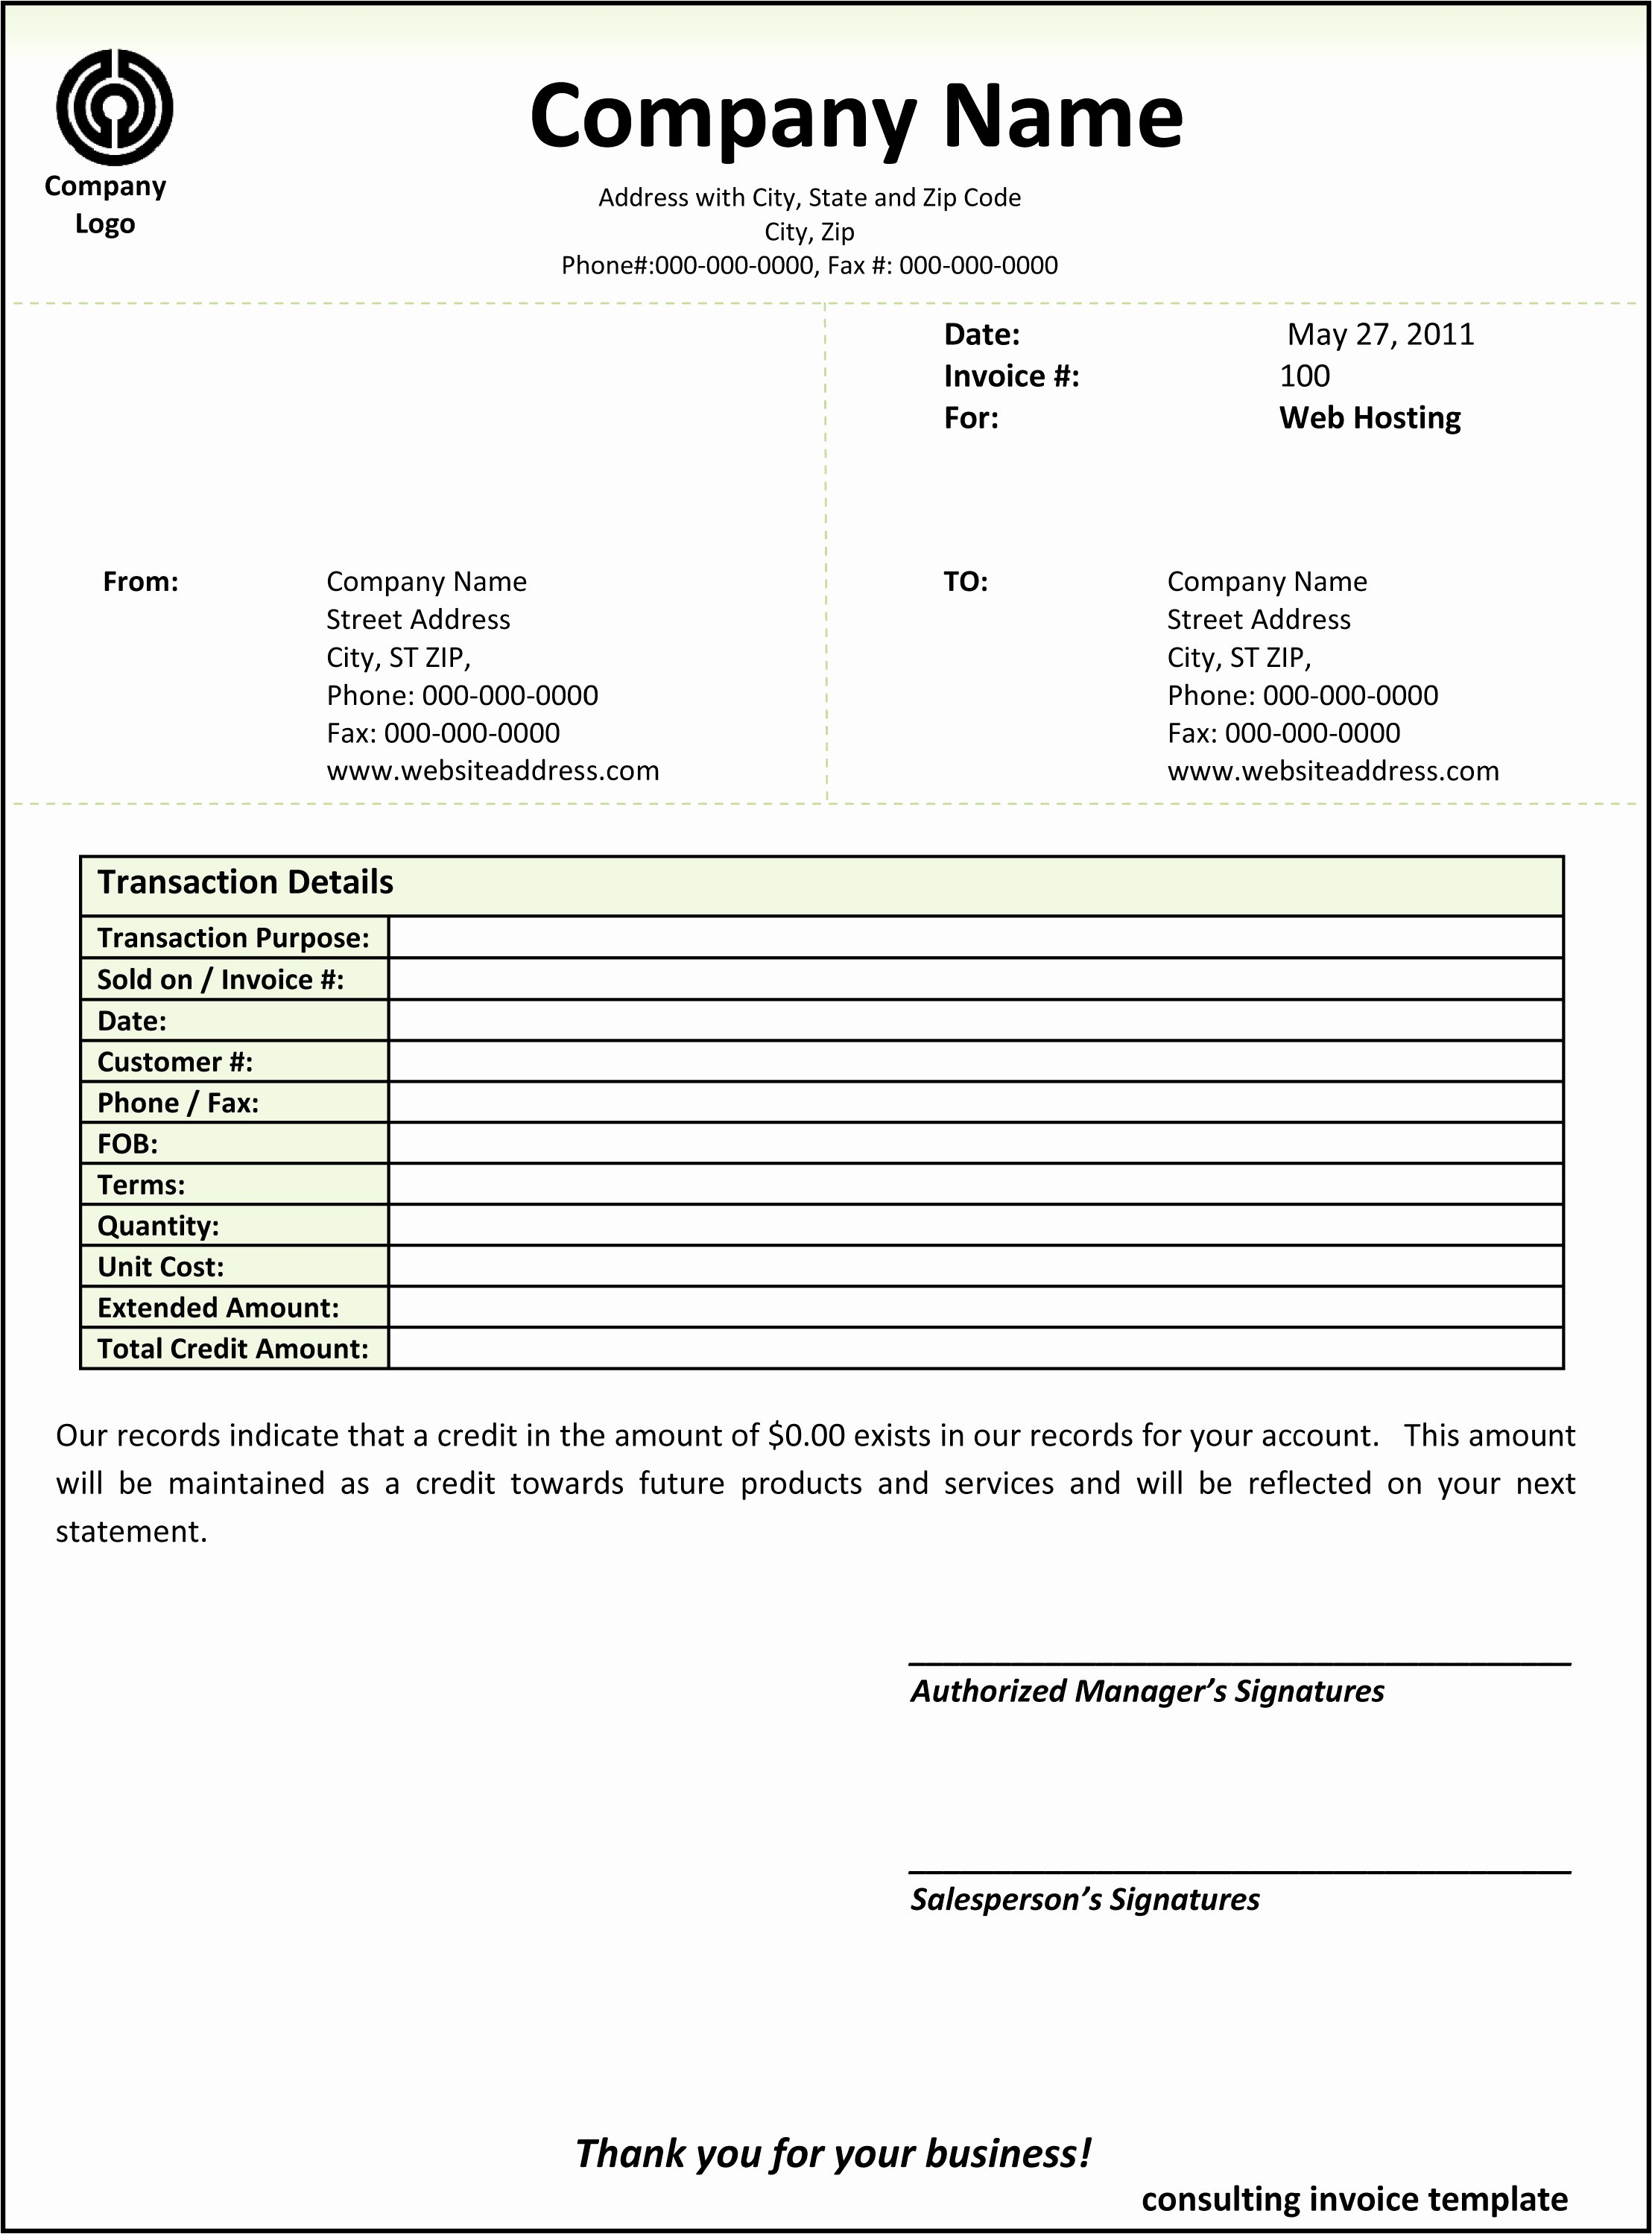 Consulting Invoice Template Word Unique Consulting Invoice Template Word